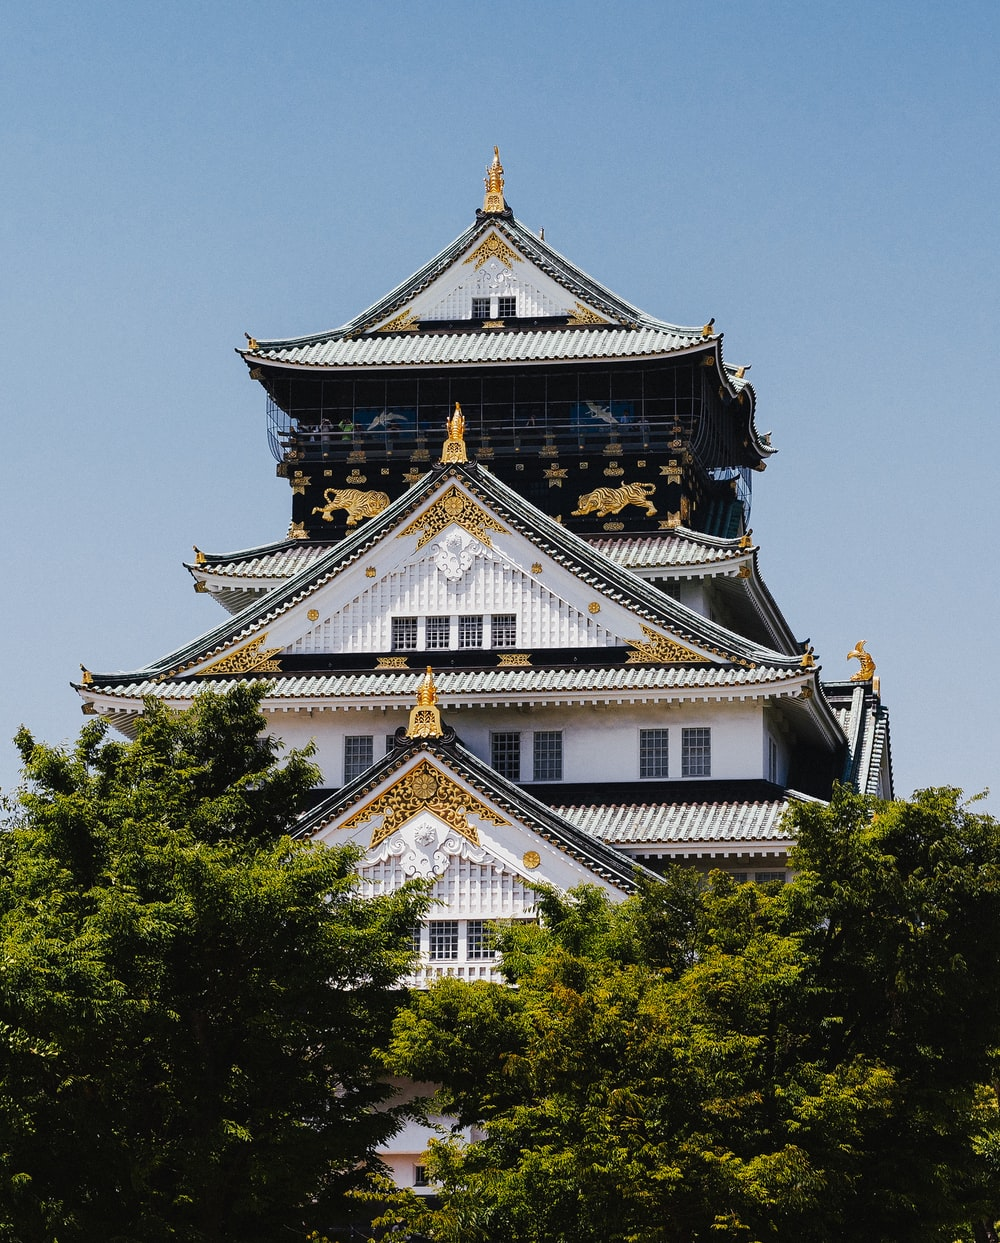 white and gold temple surrounded by green trees during daytime